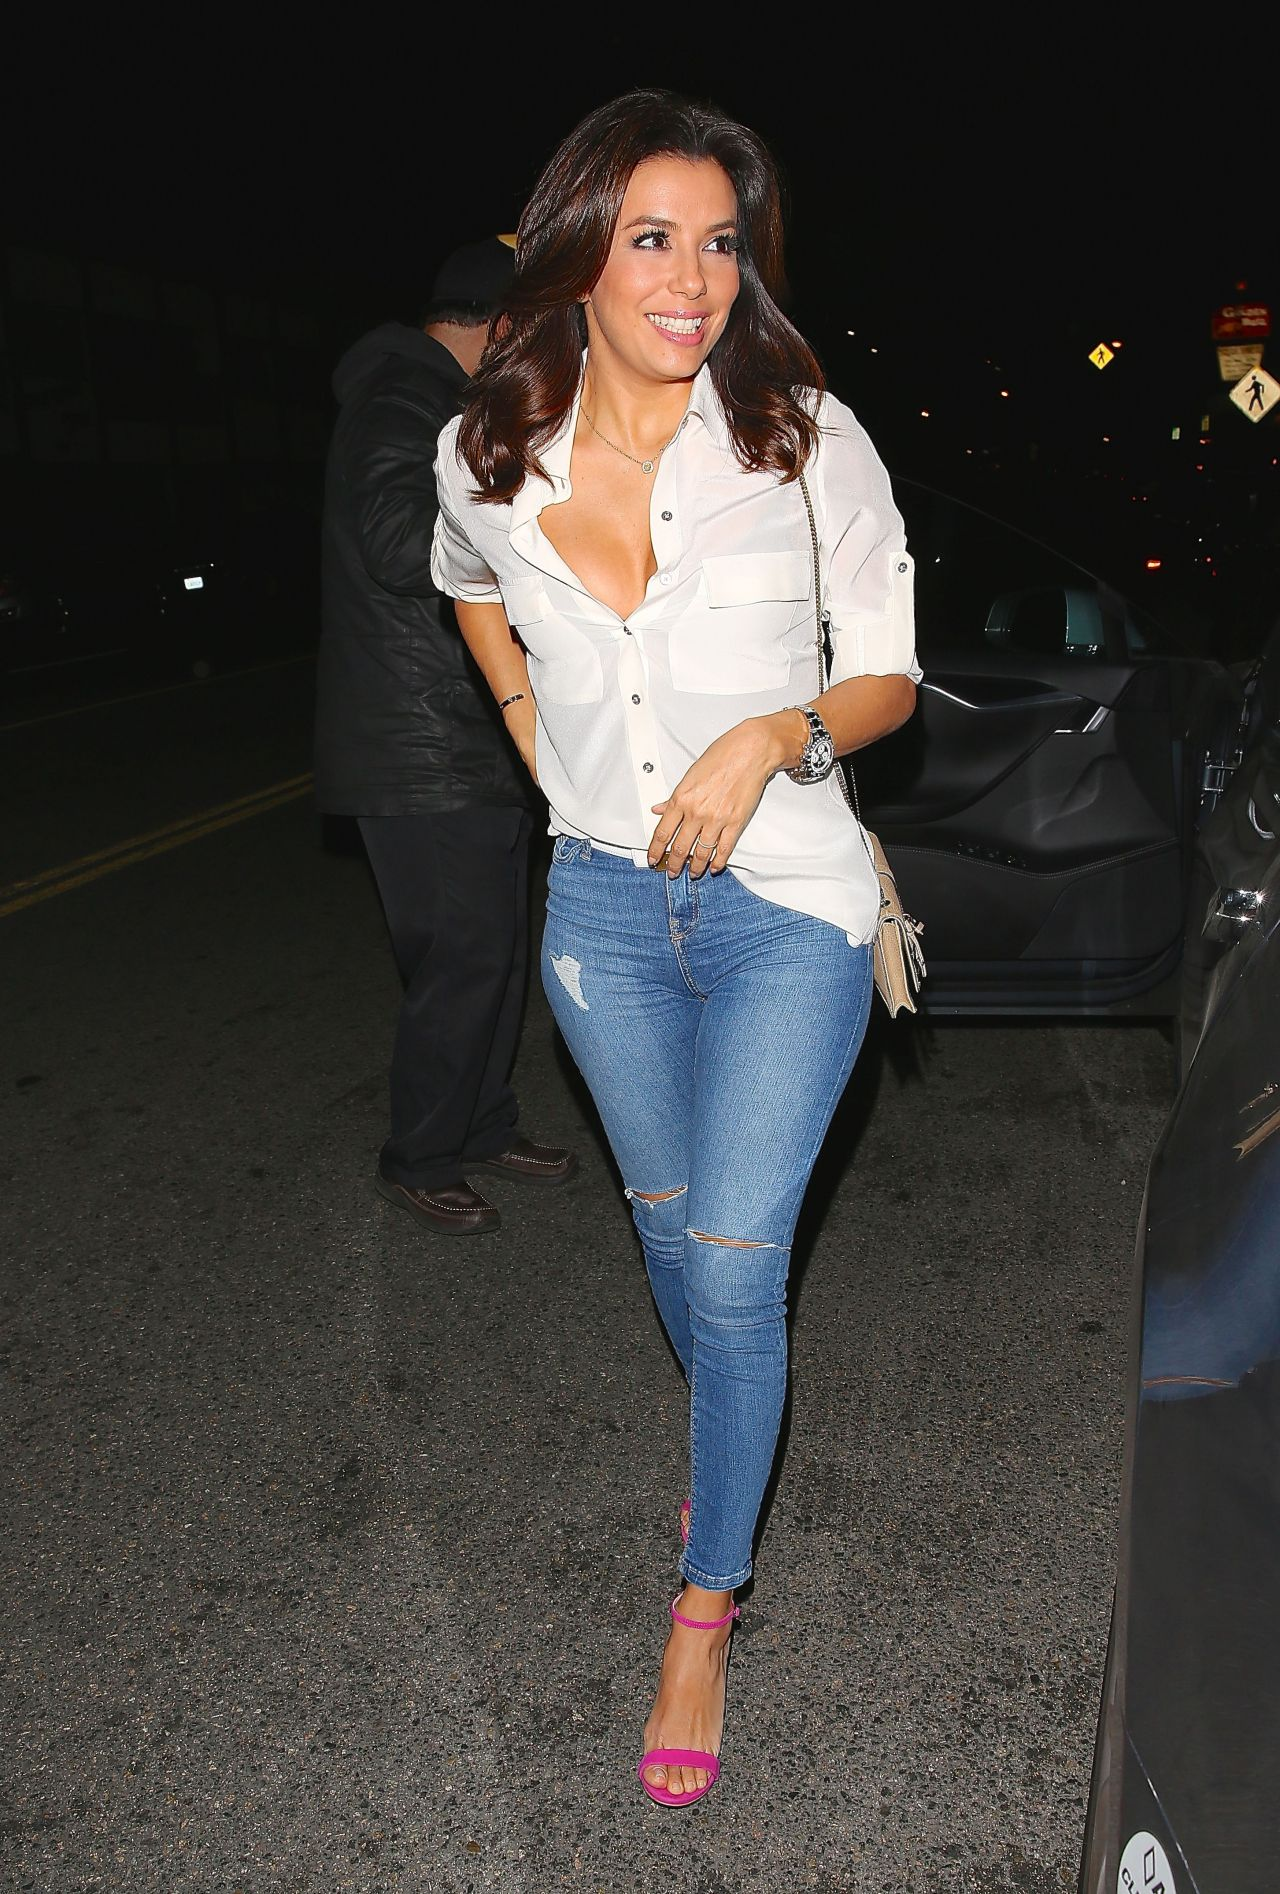 Eva Longoria In Ripped Jeans Out For Dinner At Giorgio